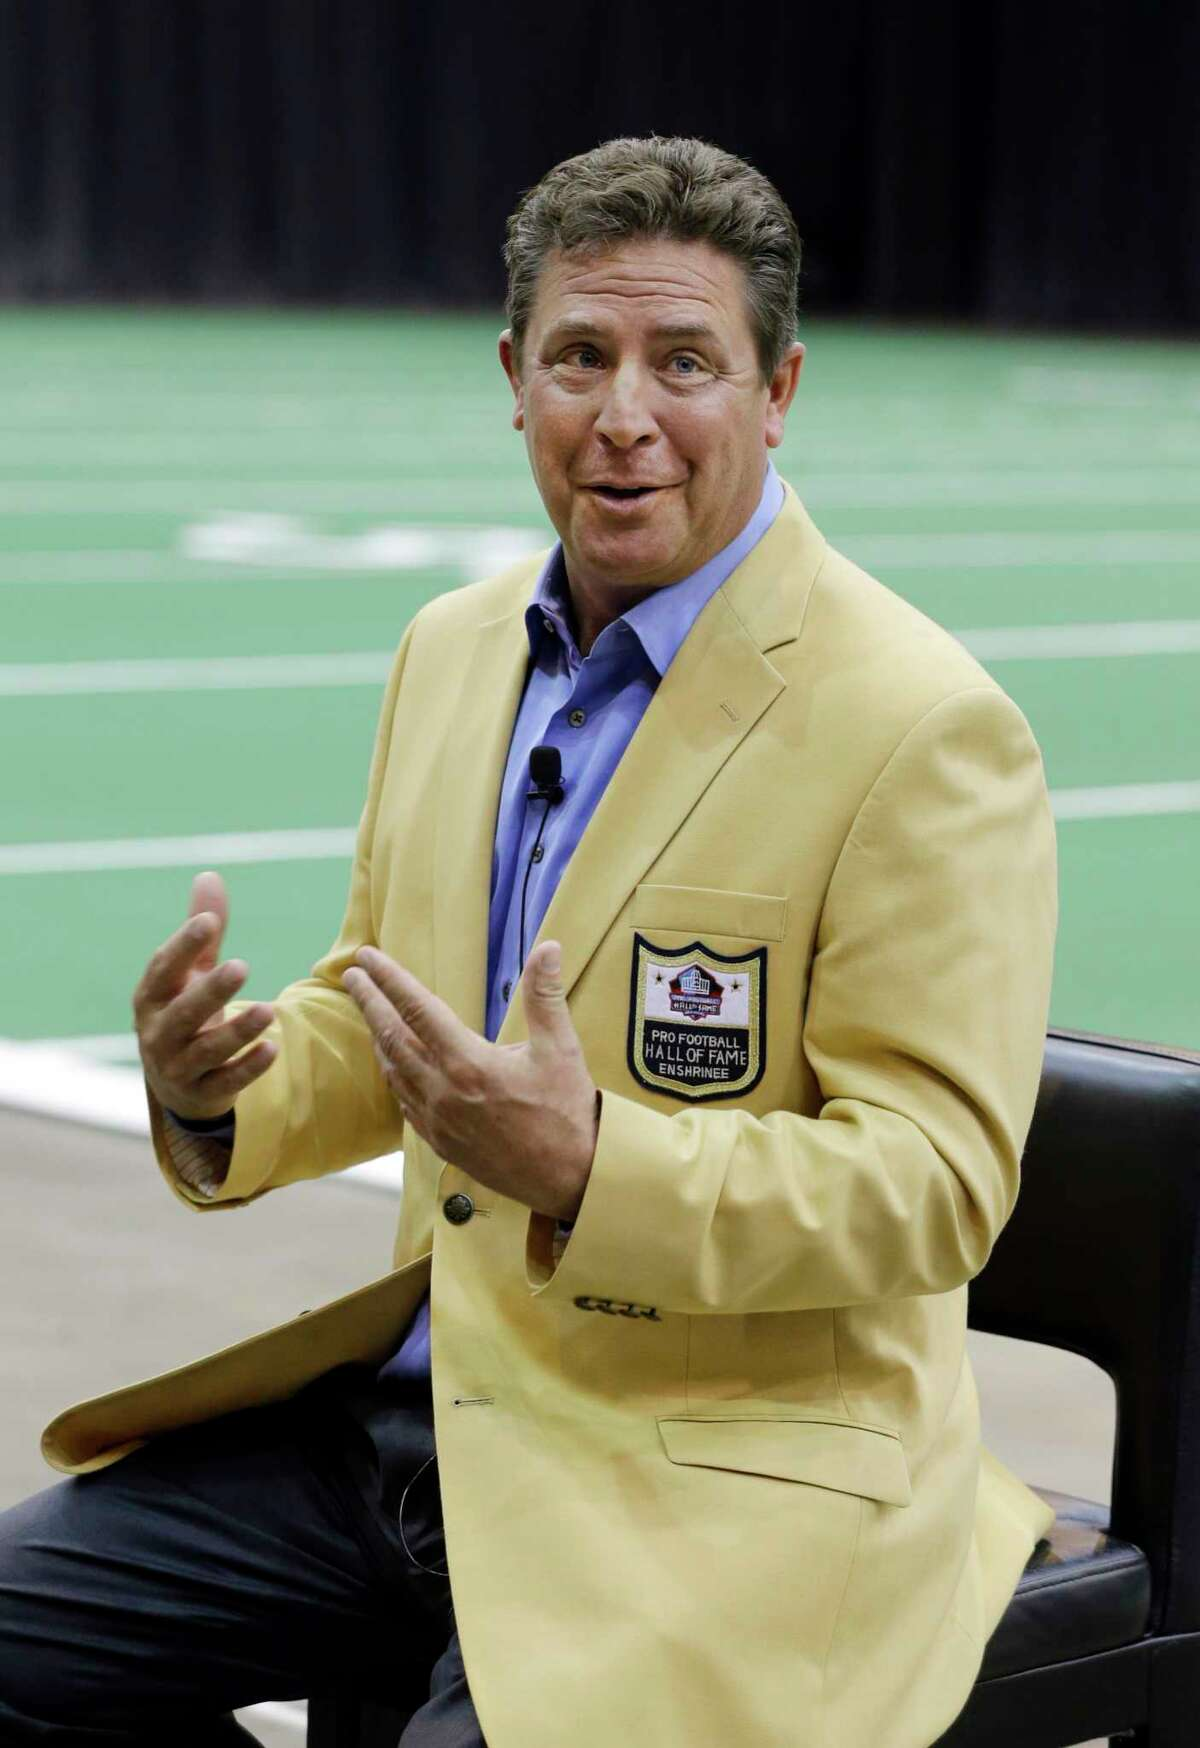 Miami Dolphins' Hall of Fame quarterback Dan Marino speaks at a news conference promoting the Pro Football Hall of Fame fanfest at the I-X Center in Cleveland Tuesday, April 29, 2014. The inaugural event will allow fans to meet and interact with 100 members of the Pro Football Hall of Fame May 3-4, 2014. (AP Photo) ORG XMIT: OHMD114